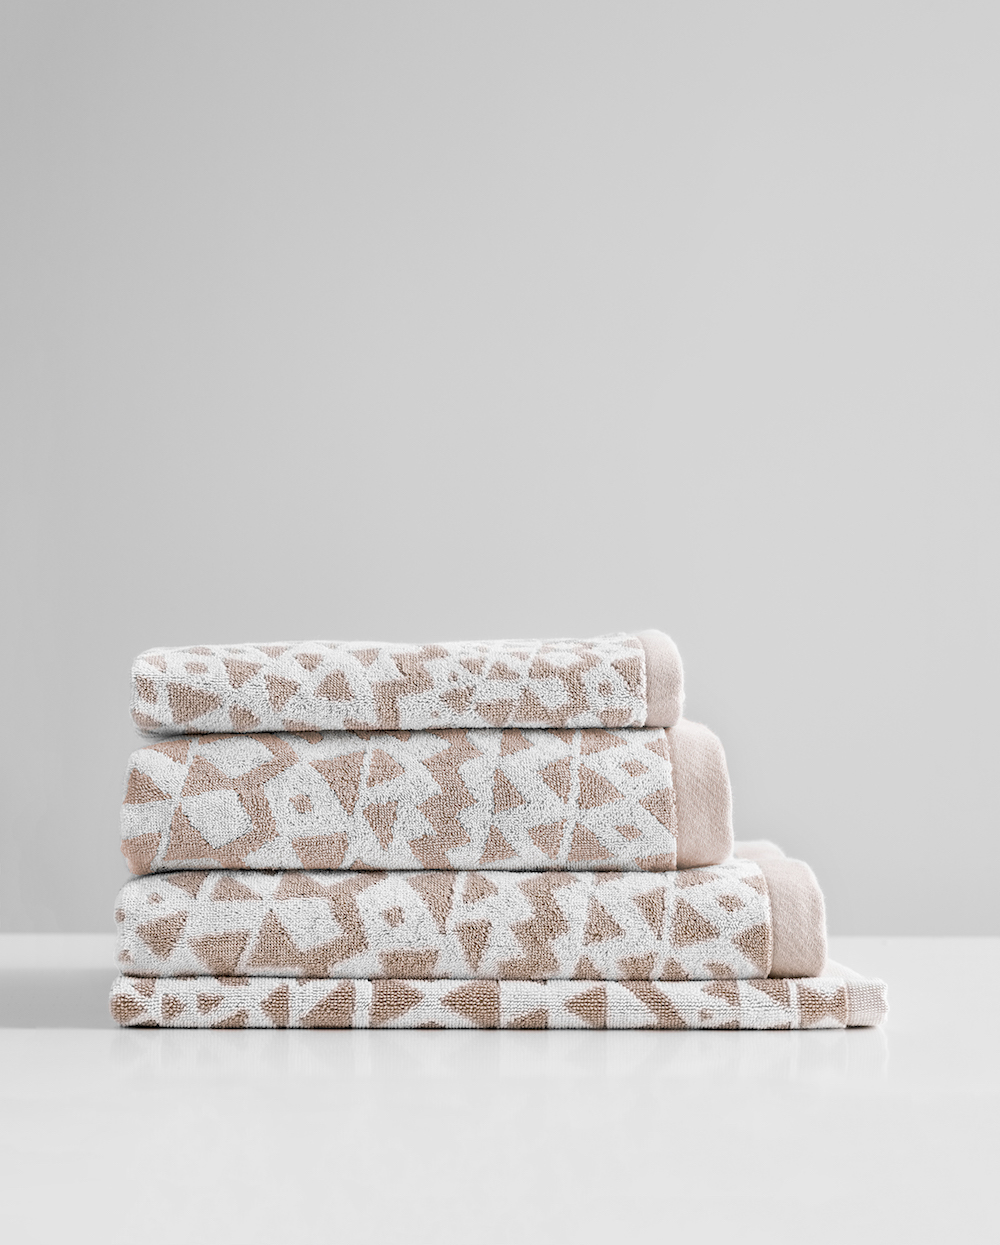 inca_myer_towel_stack_clay.jpg